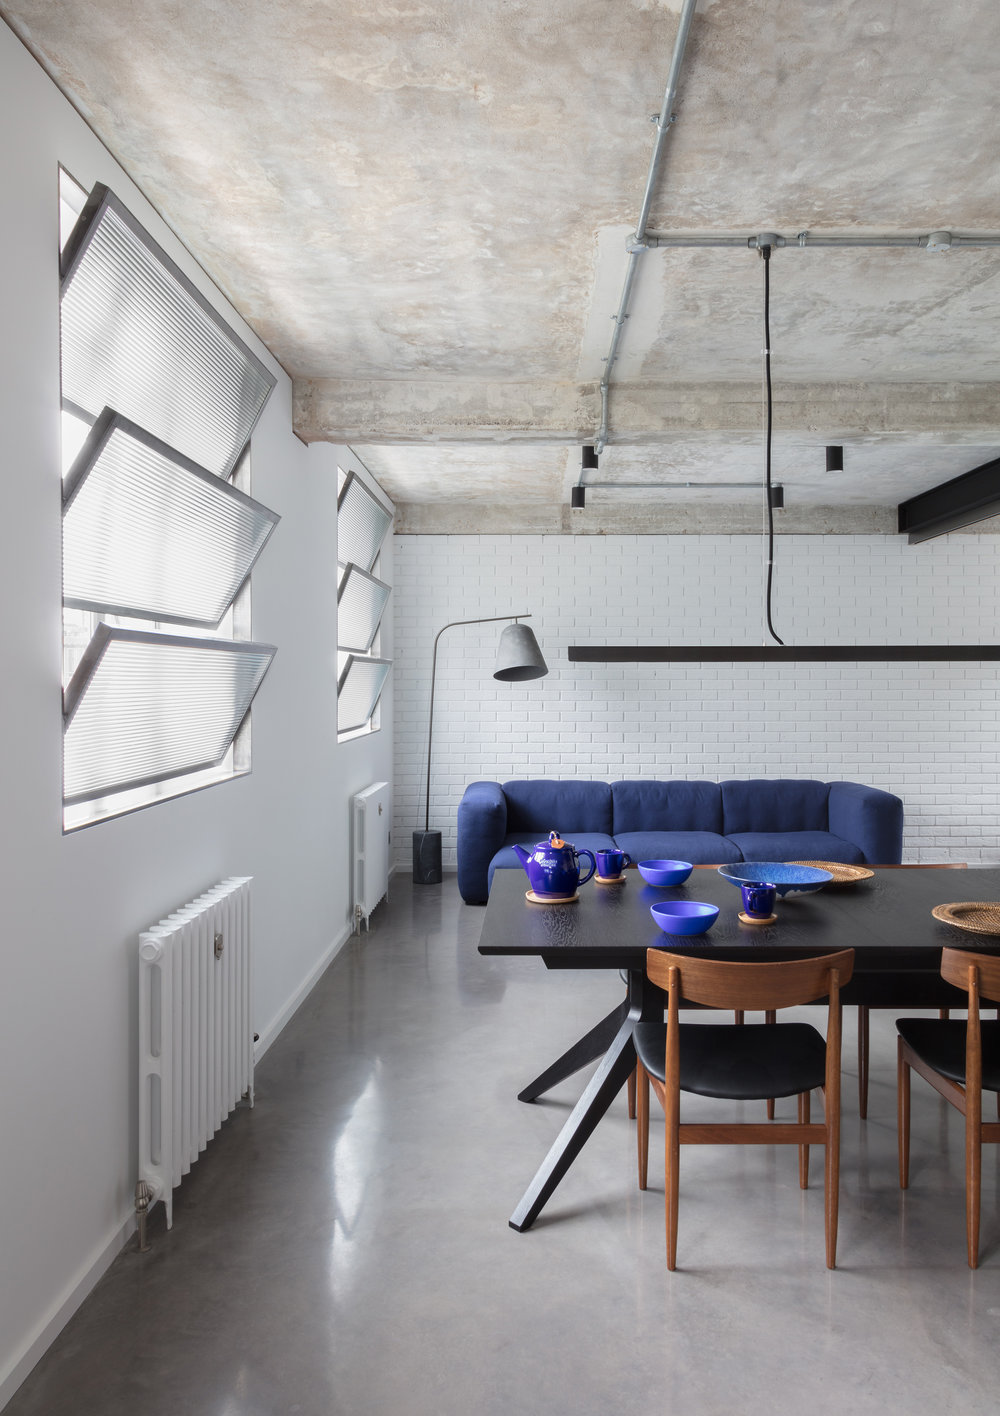 Union-Wharf-Islington-London-Exposed-Concrete-Ceiling-Shutters-Dining-Hay-Sofa-Interior.jpg